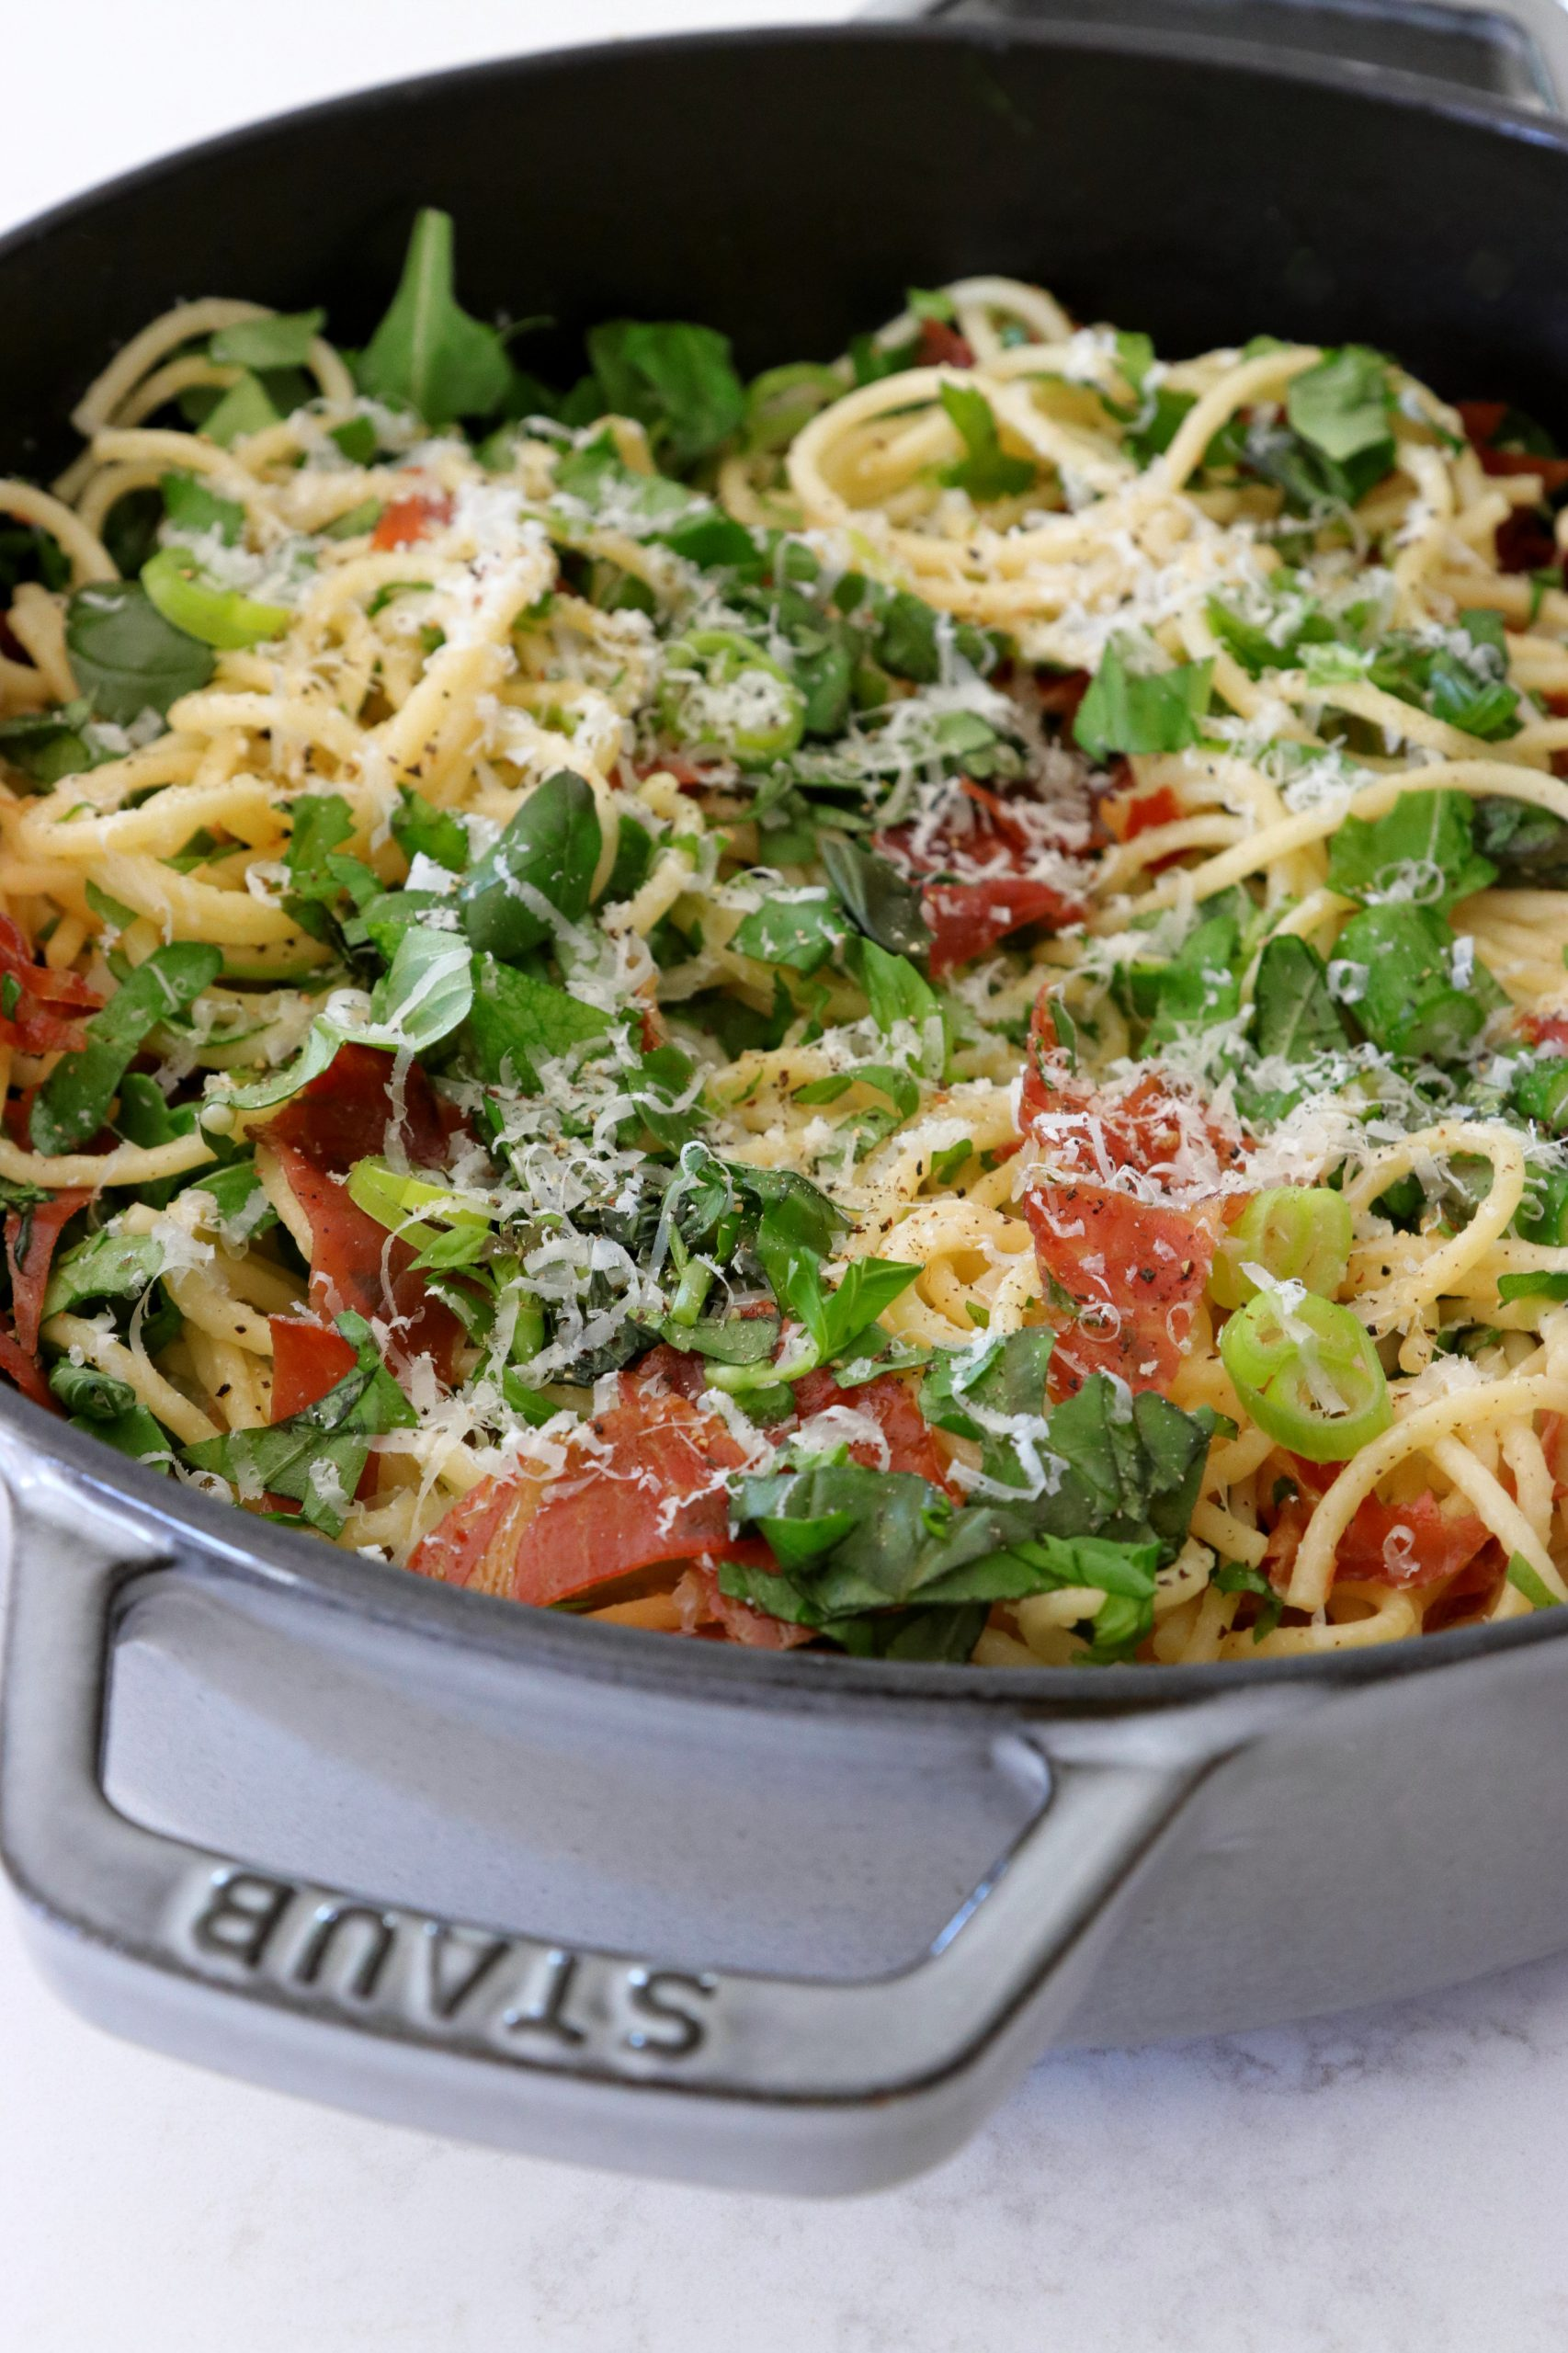 Recipe Notes | Prosciutto and Asparagus Pasta - Humphrey Munson